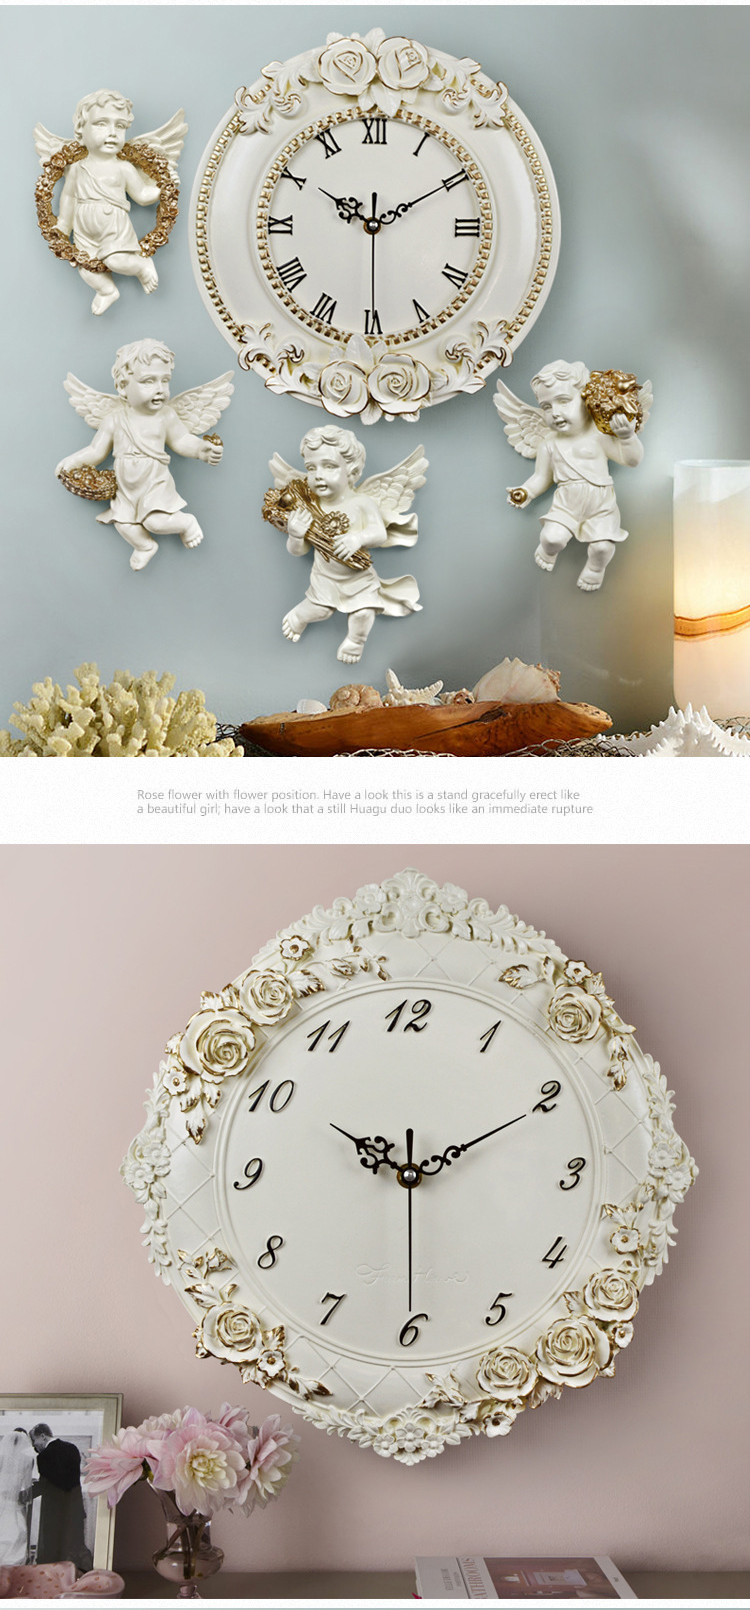 wall-clock-large-wall-clock-watch-vintage-wall-clock-home-decor-accessories-3d-statue-digital-clock-house-room-wedding-party-decoration (5)